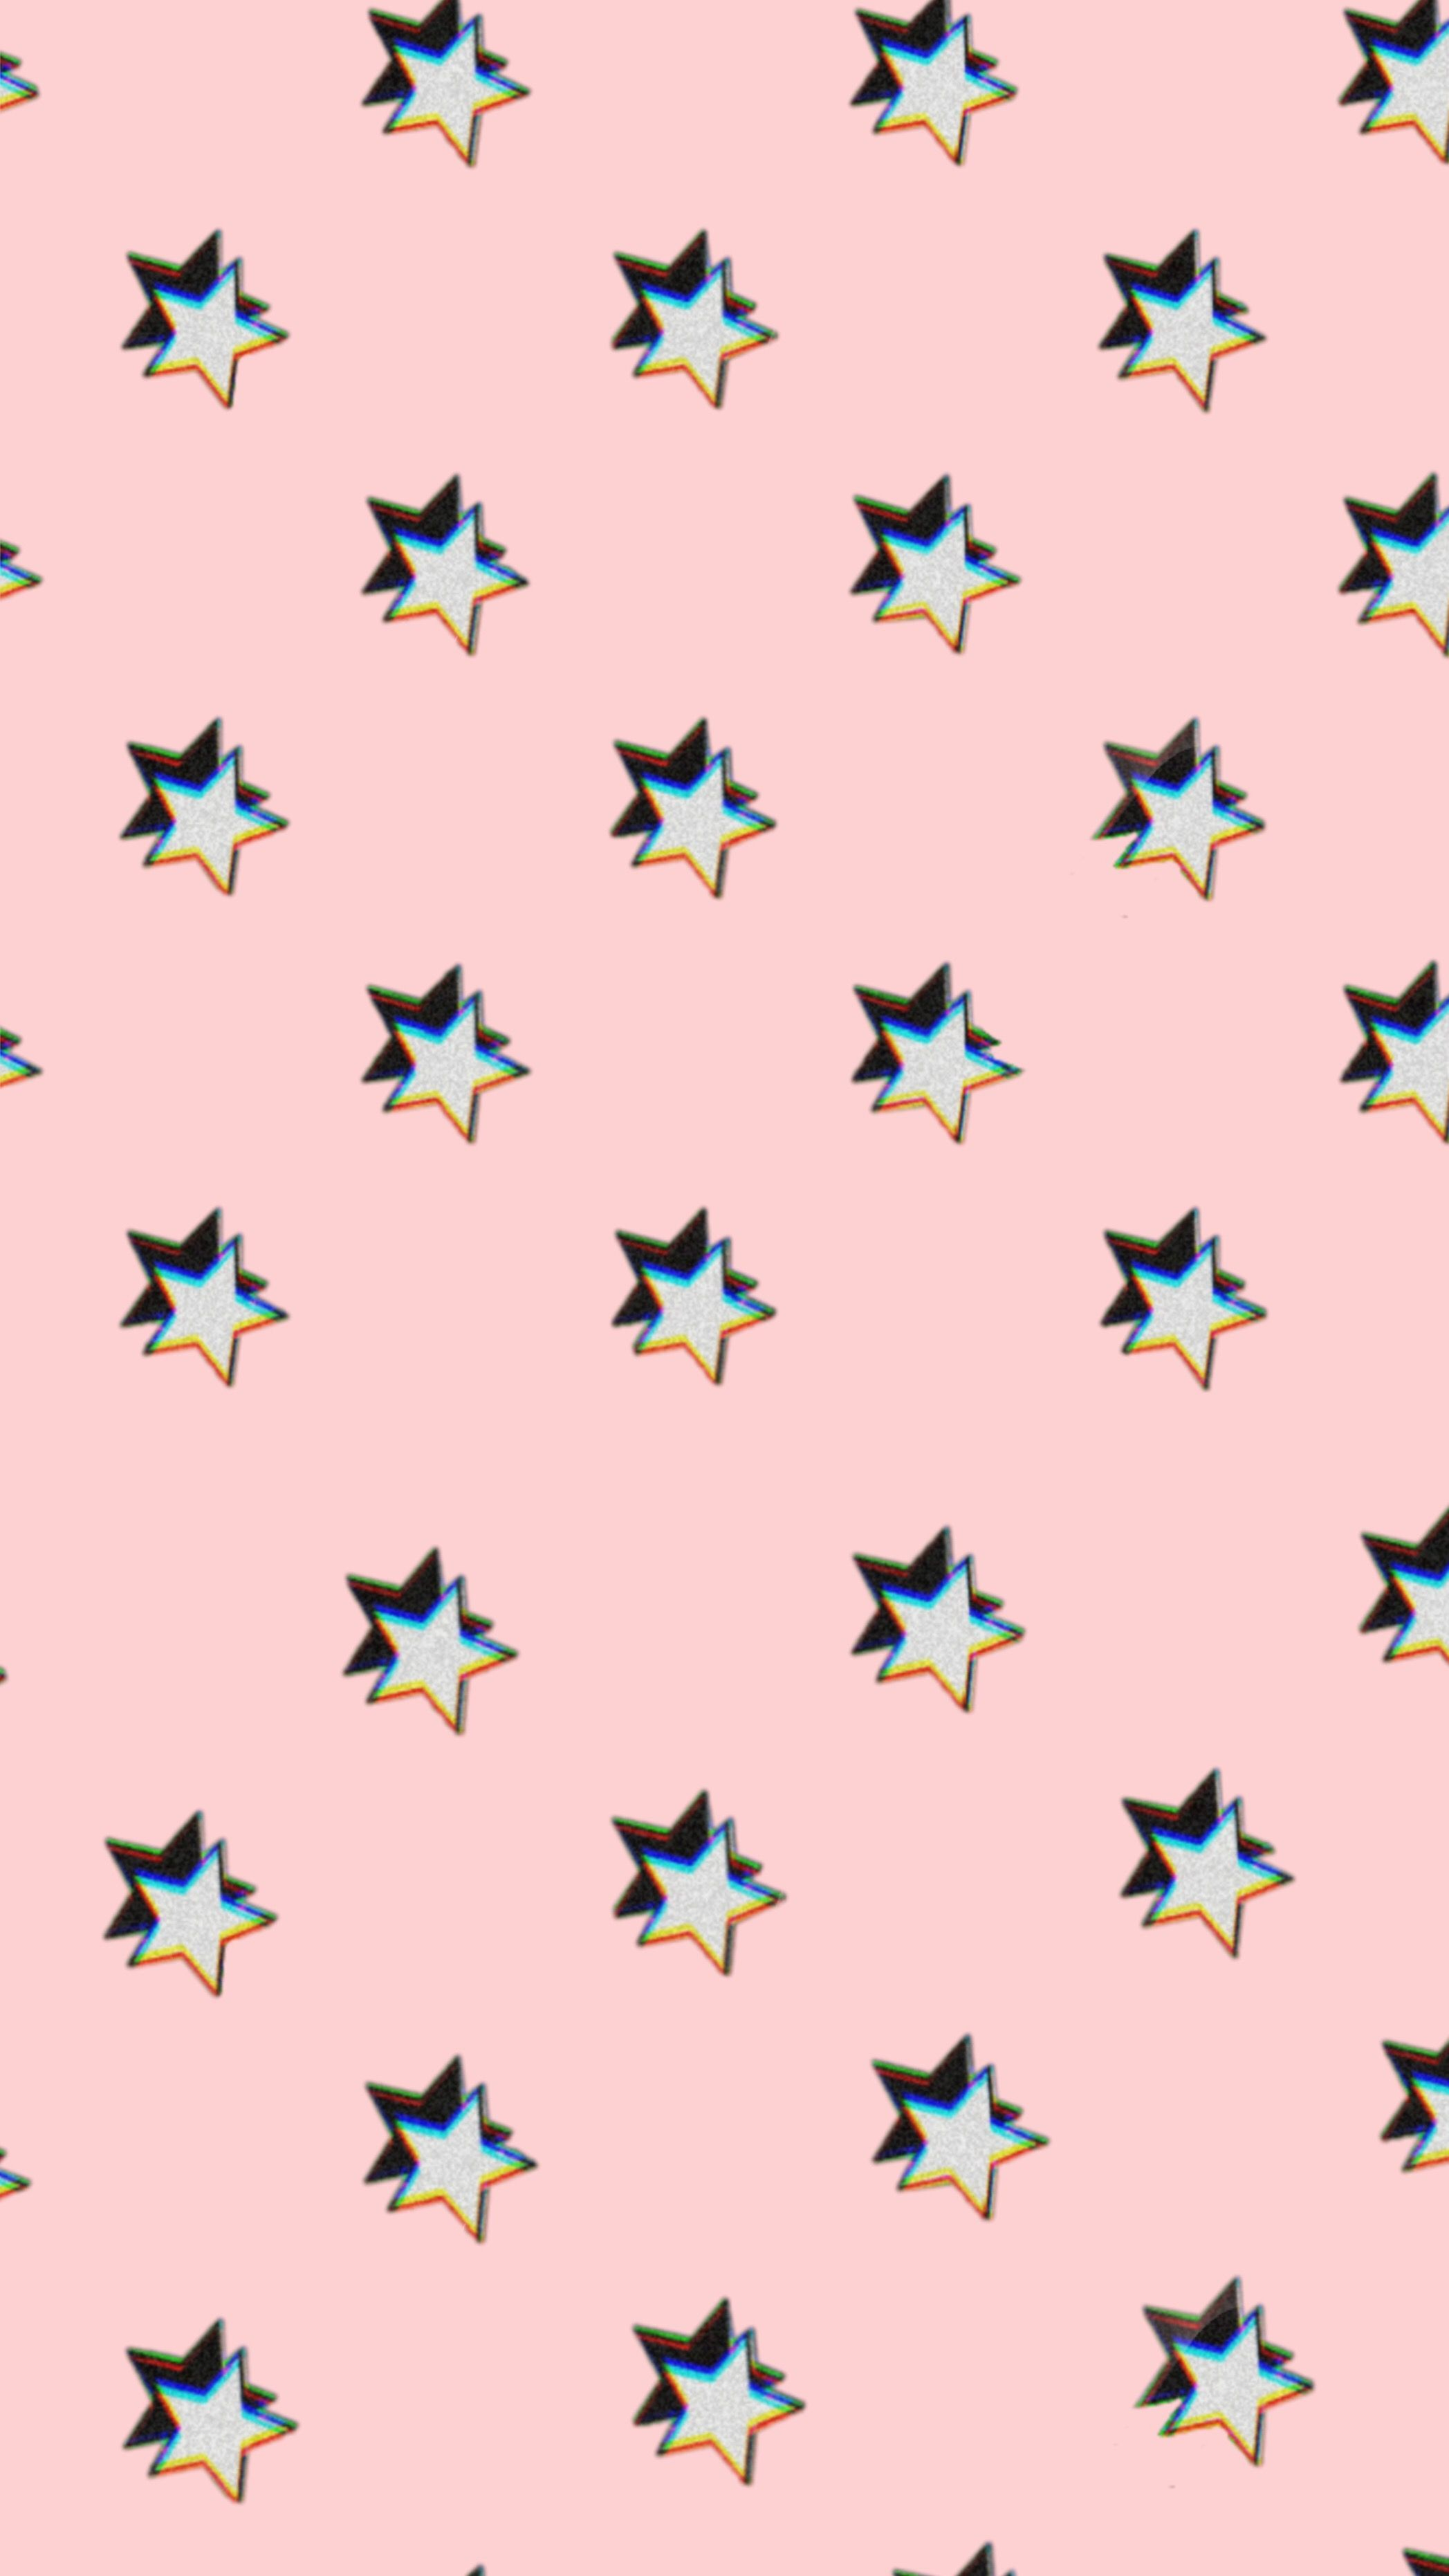 Wallpapers With Stars Cute Patterns Wallpaper Cute Wallpapers Iphone Wallpaper Vintage